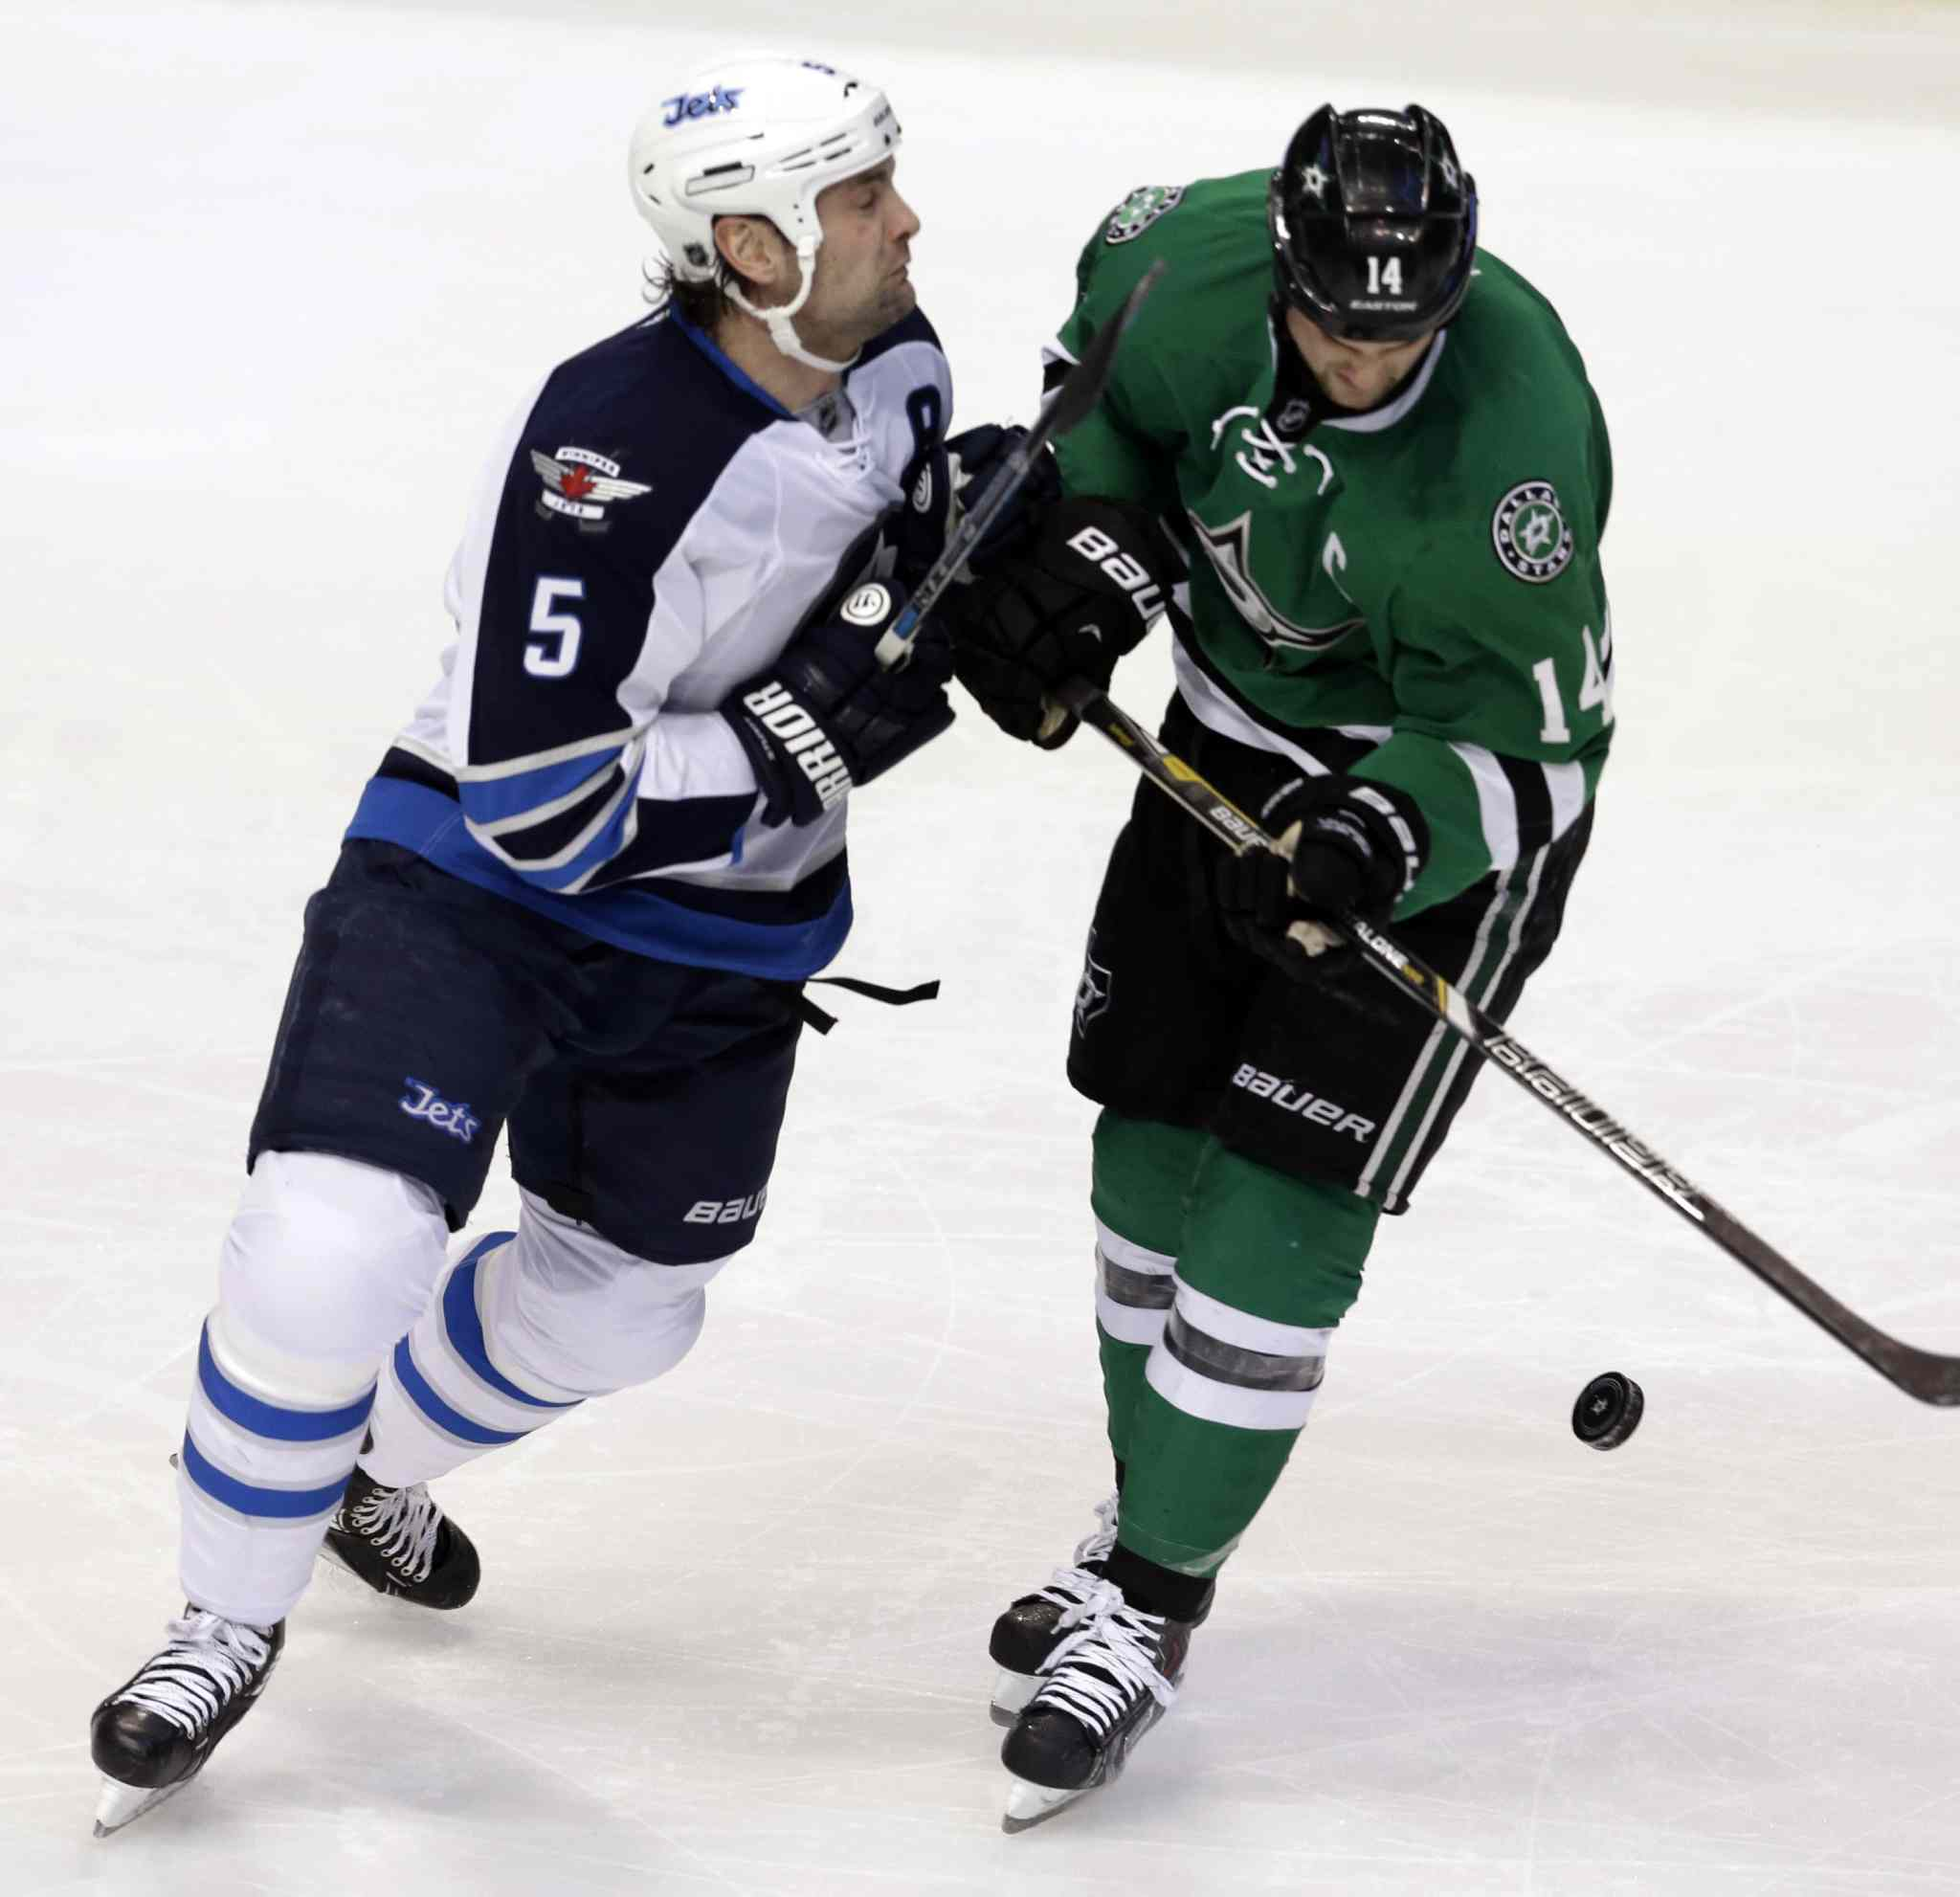 Winnipeg Jets defenceman Mark Stuart and Dallas Stars left-winger Jamie Benn battle for the puck during the first period.